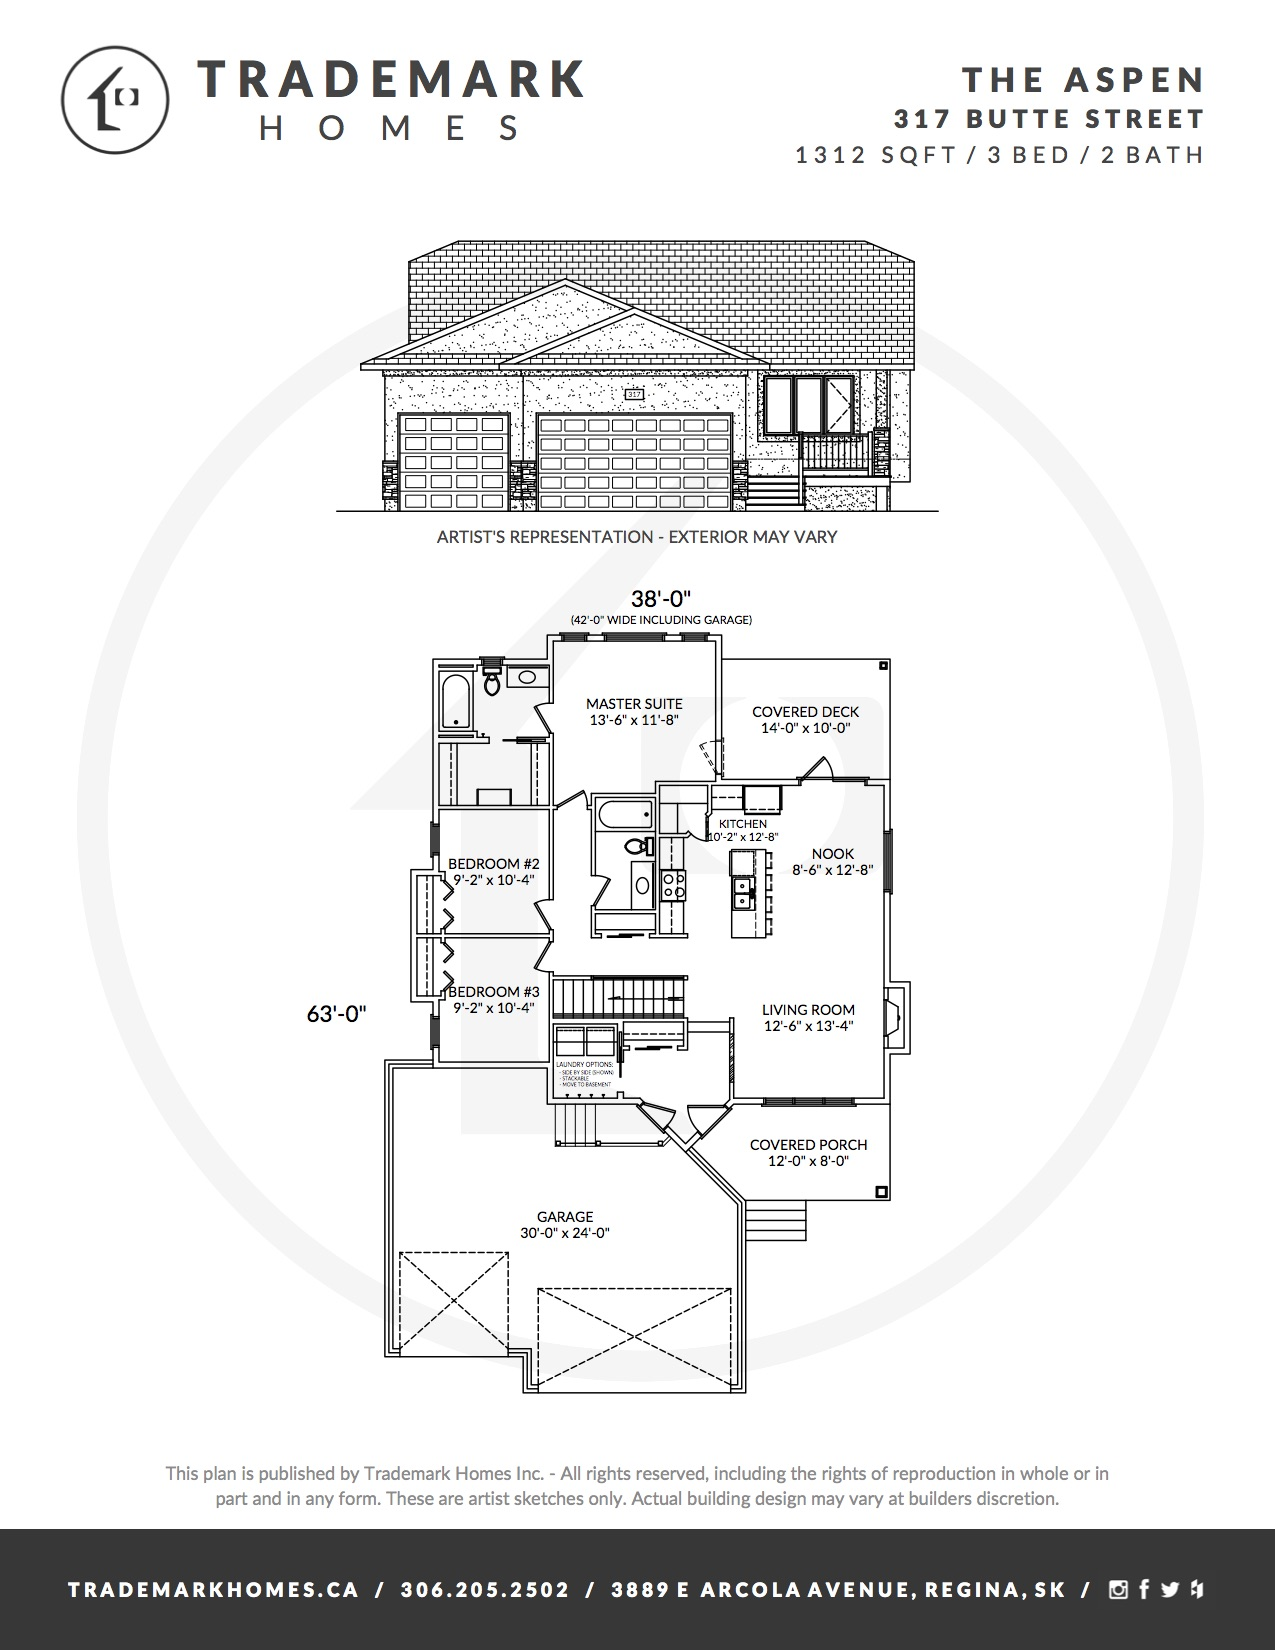 317 Butte Street - The Aspen - Floorplan - Pilot Butte